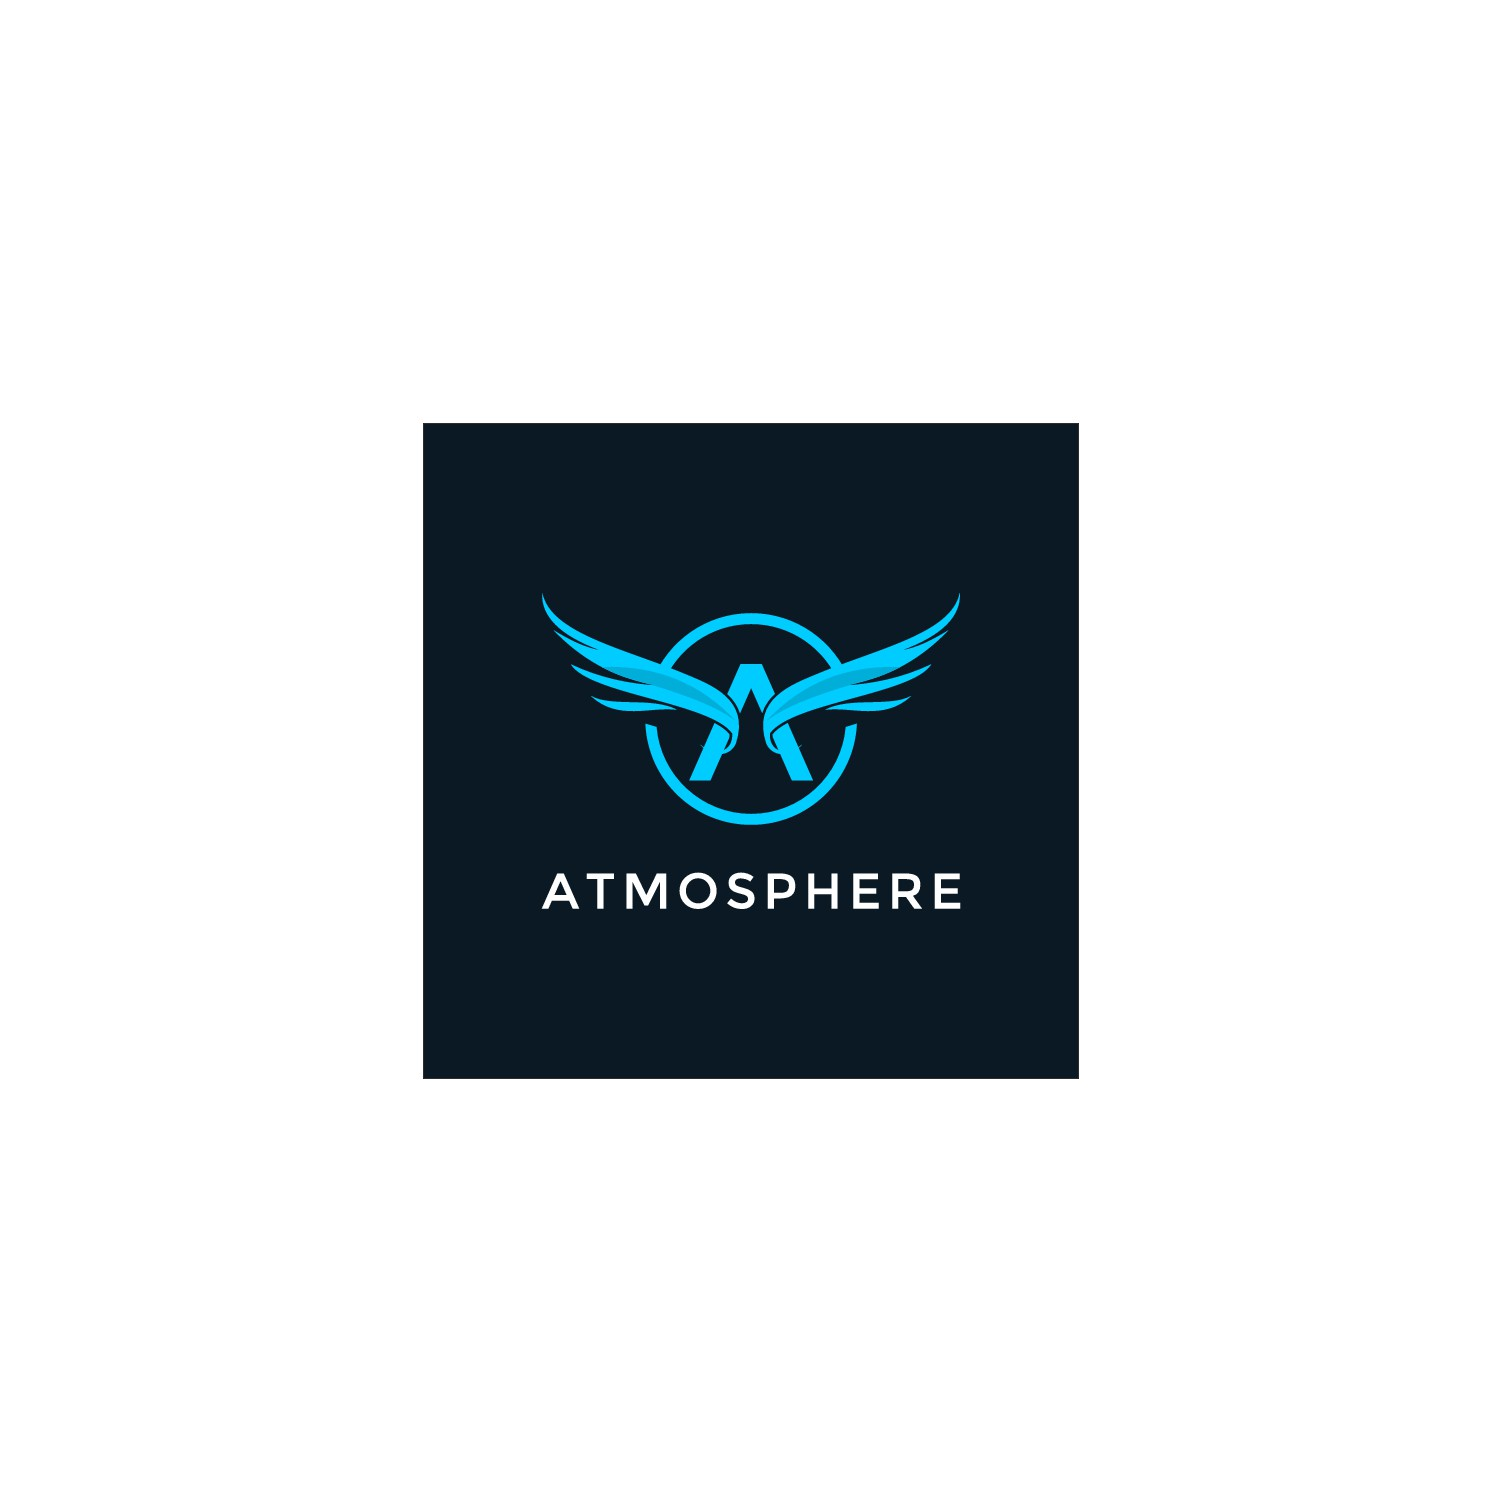 Design a luxury aviation themed logo with some modern accents